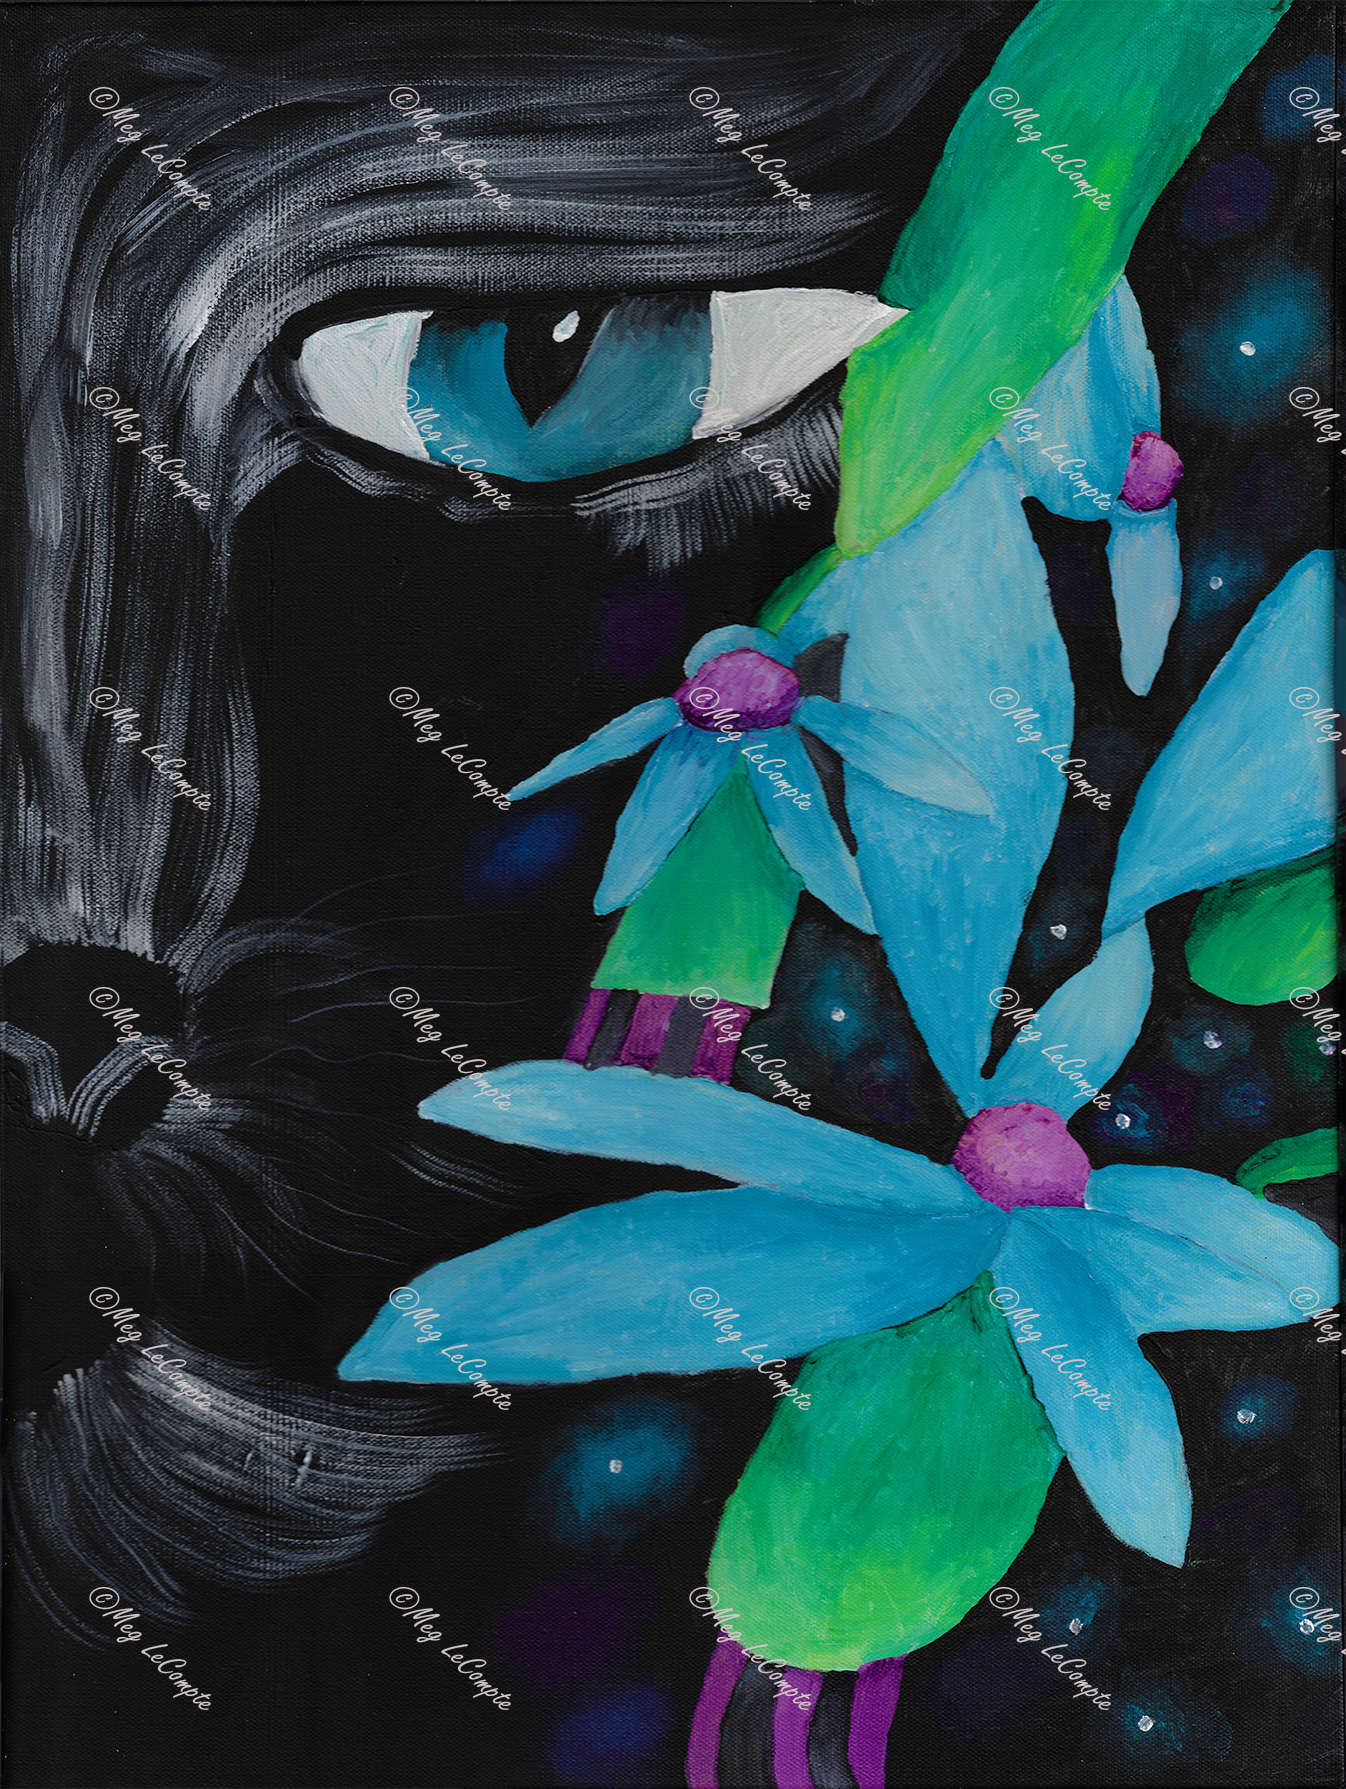 The Black Cat in the Flower with the Fireflies